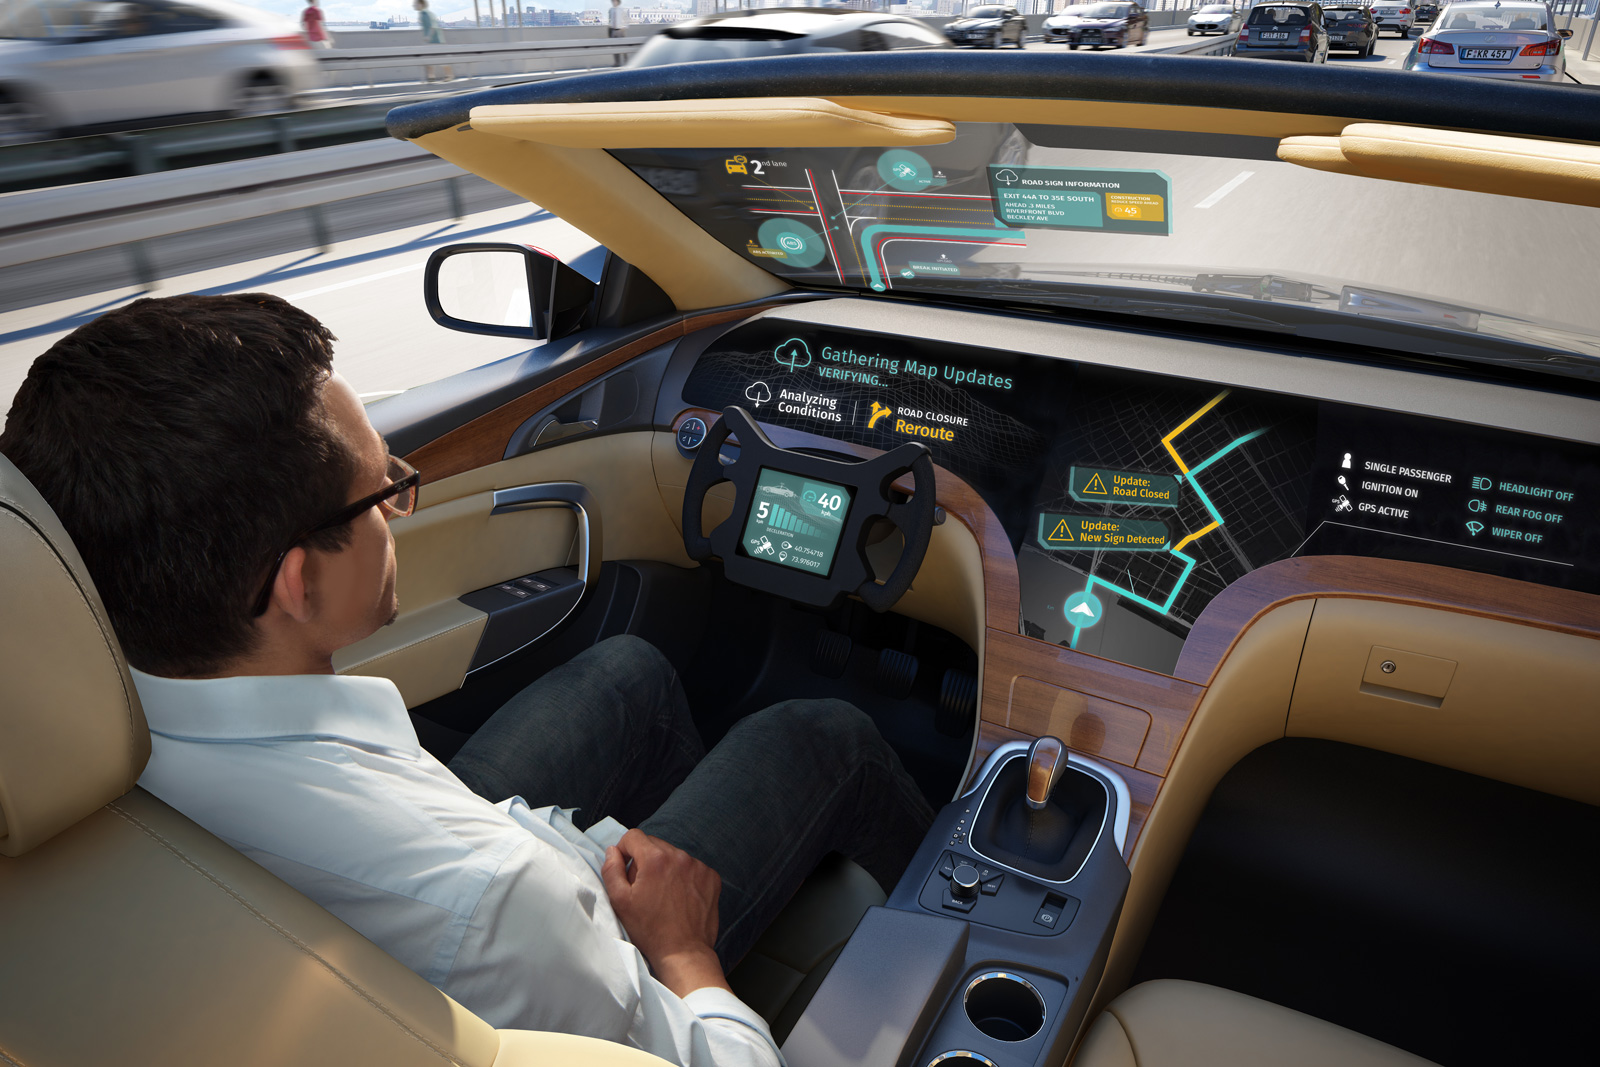 Survey Reveals Self-driving Cars Yet to Gain Widespread Acceptance